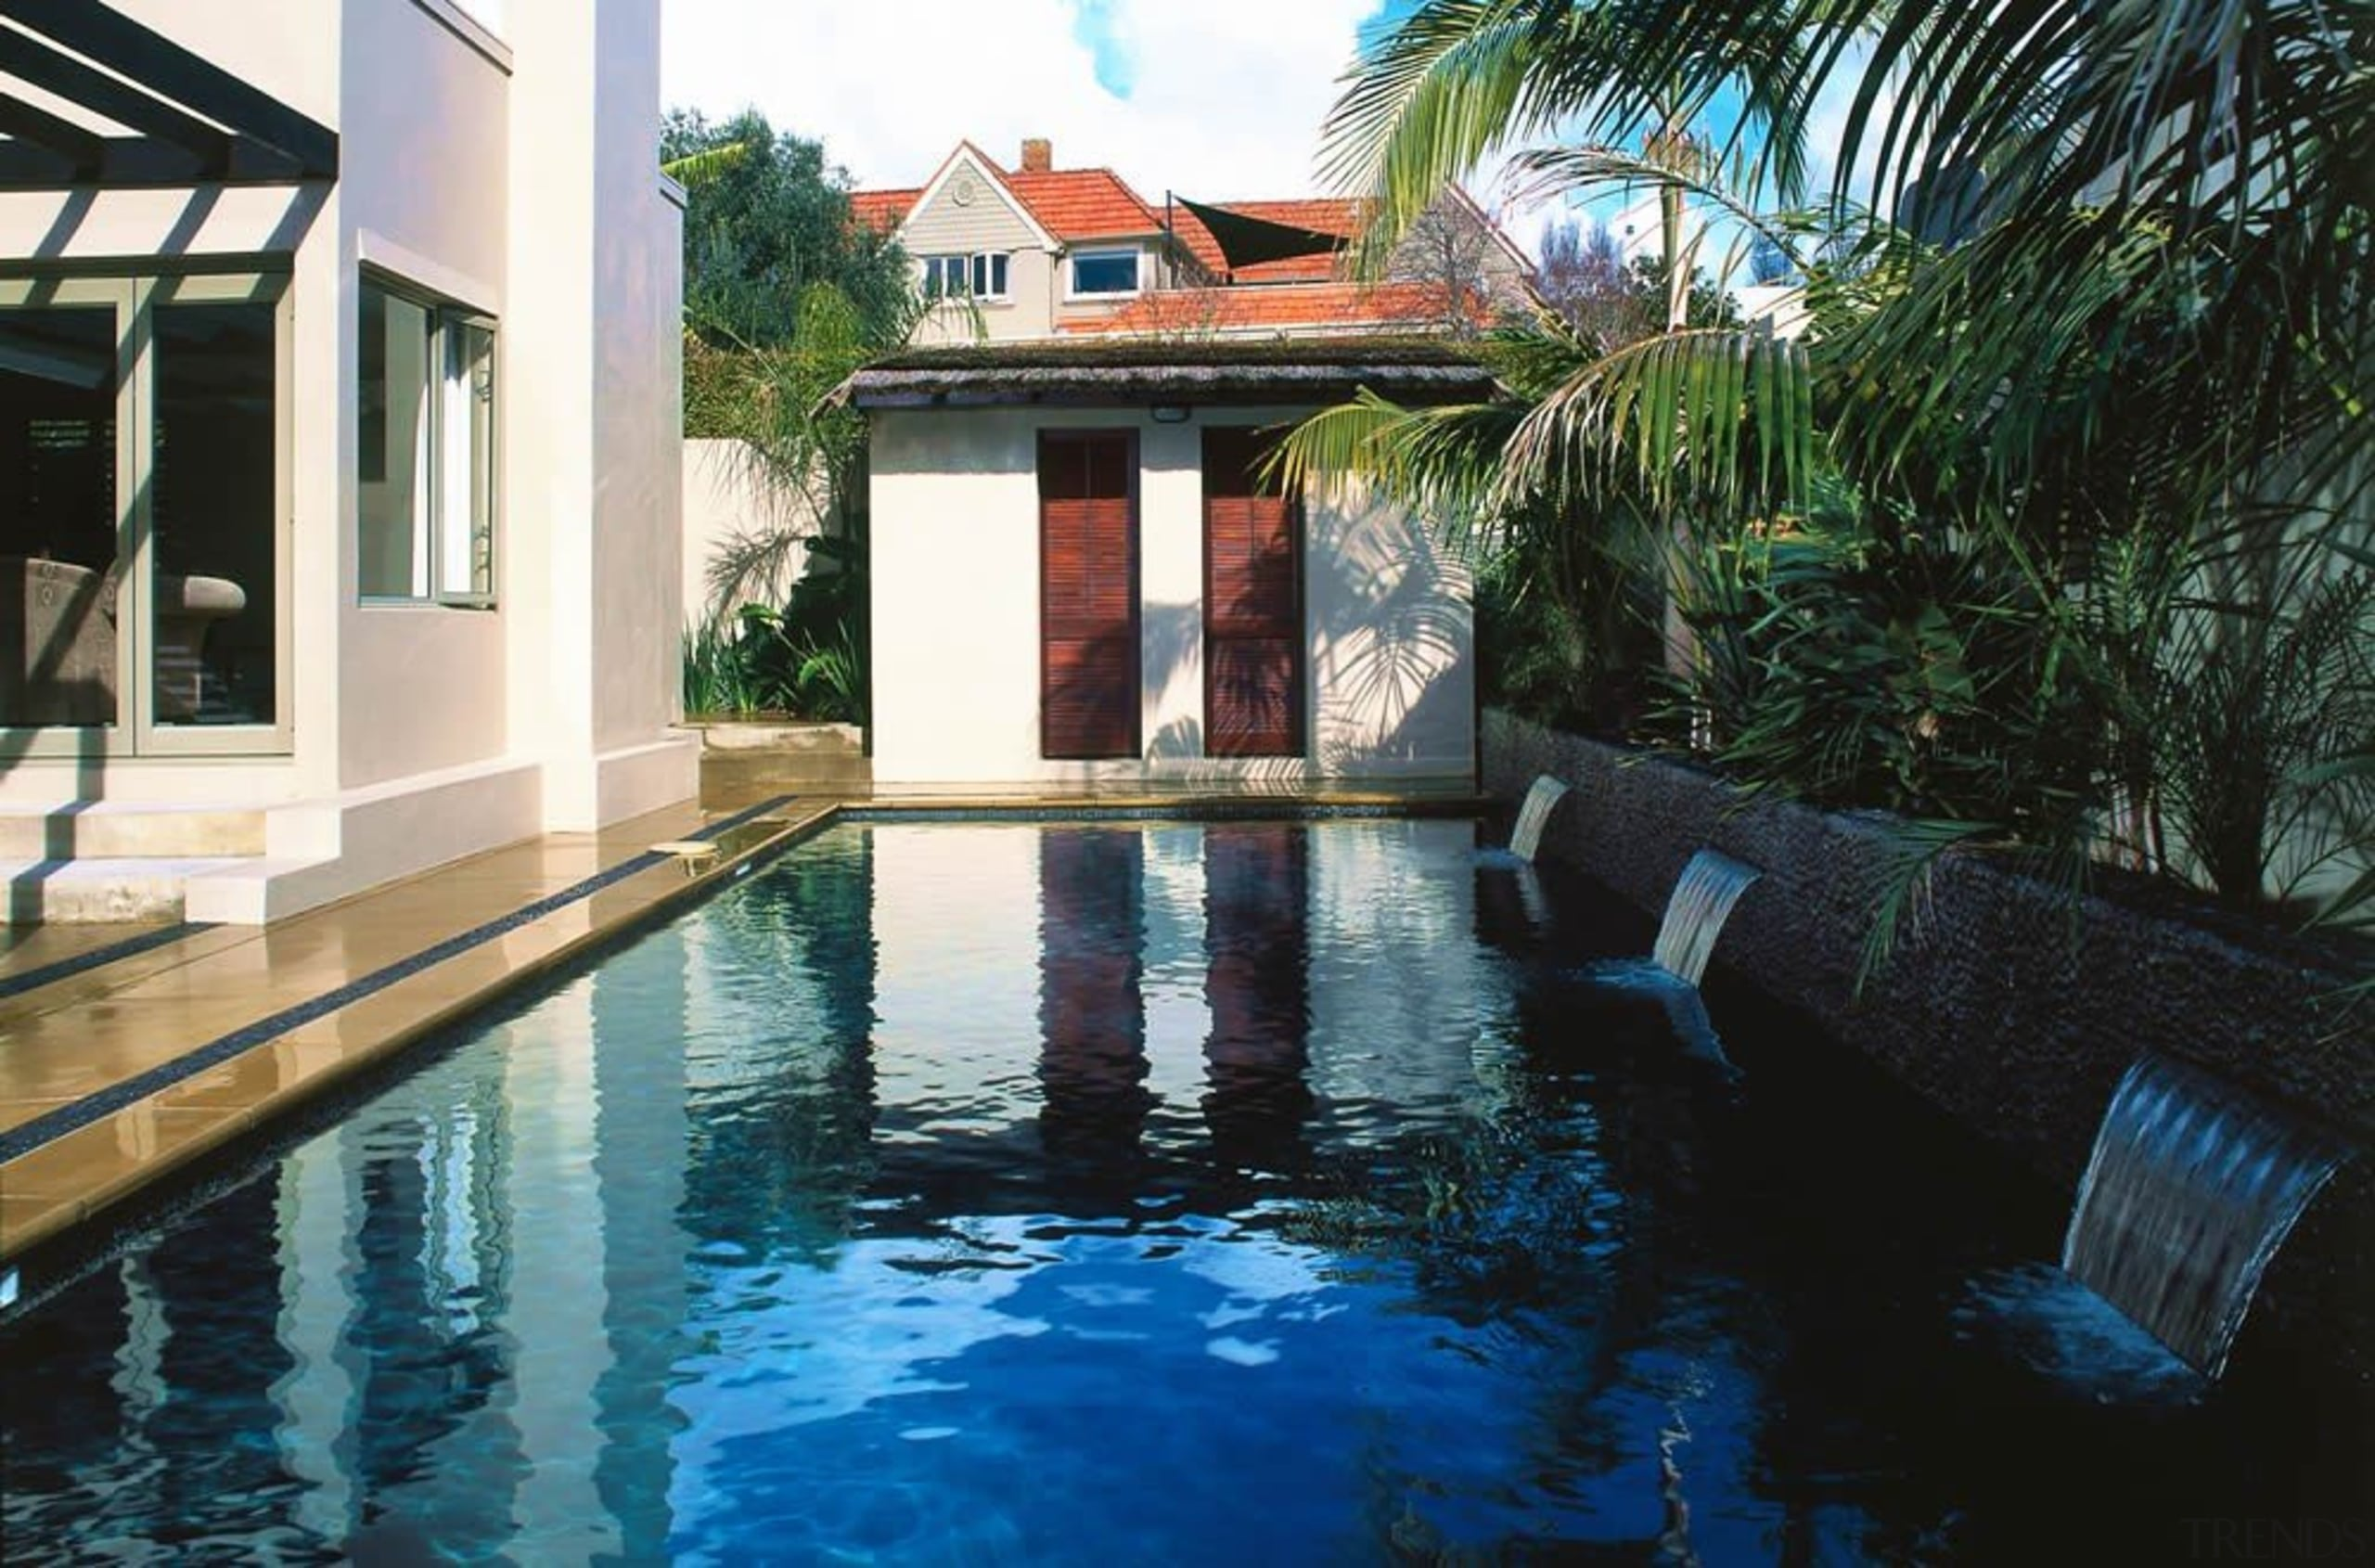 Residential - Residential - arecales | estate | arecales, estate, hacienda, home, house, leisure, palm tree, property, real estate, reflecting pool, resort, swimming pool, villa, water, black